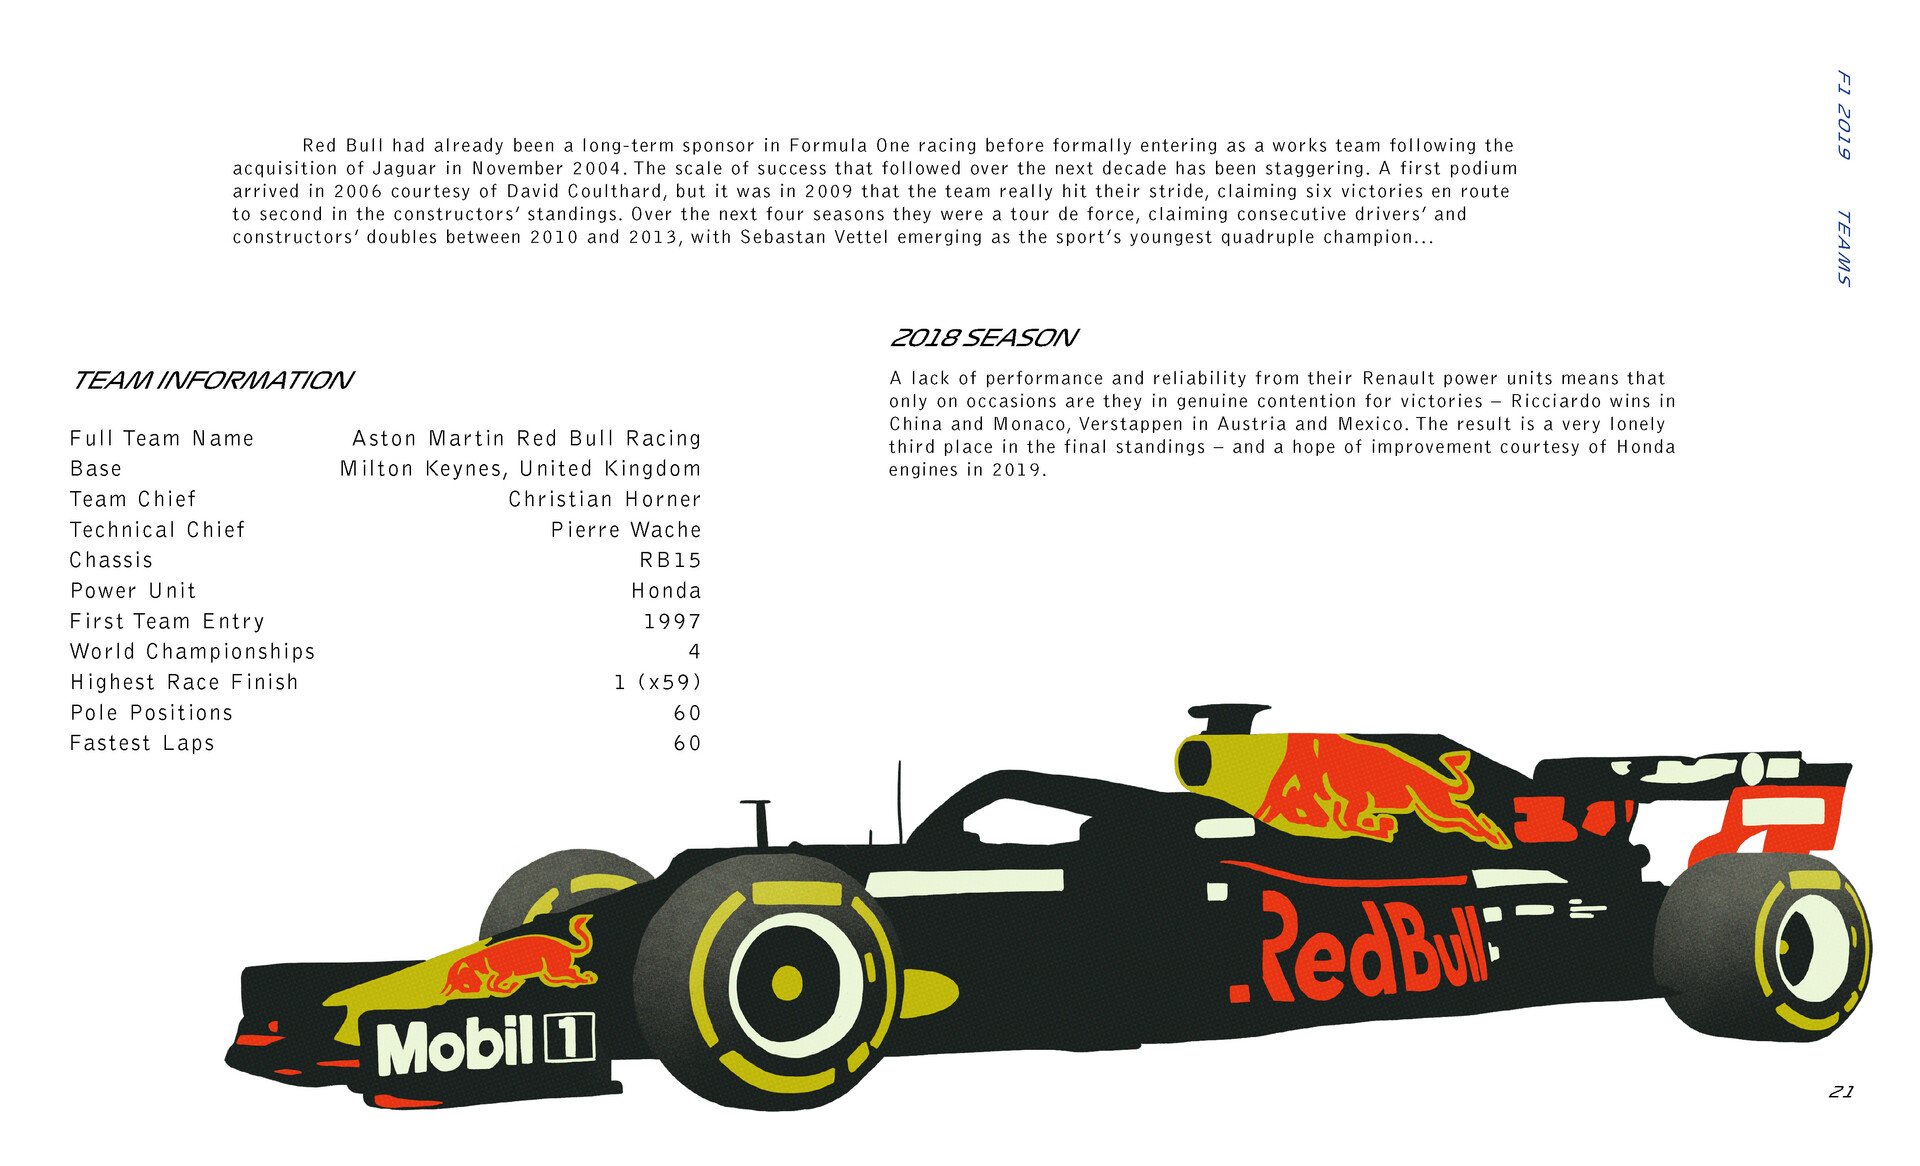 Mary roach mary bunner f1 presentation book page 21